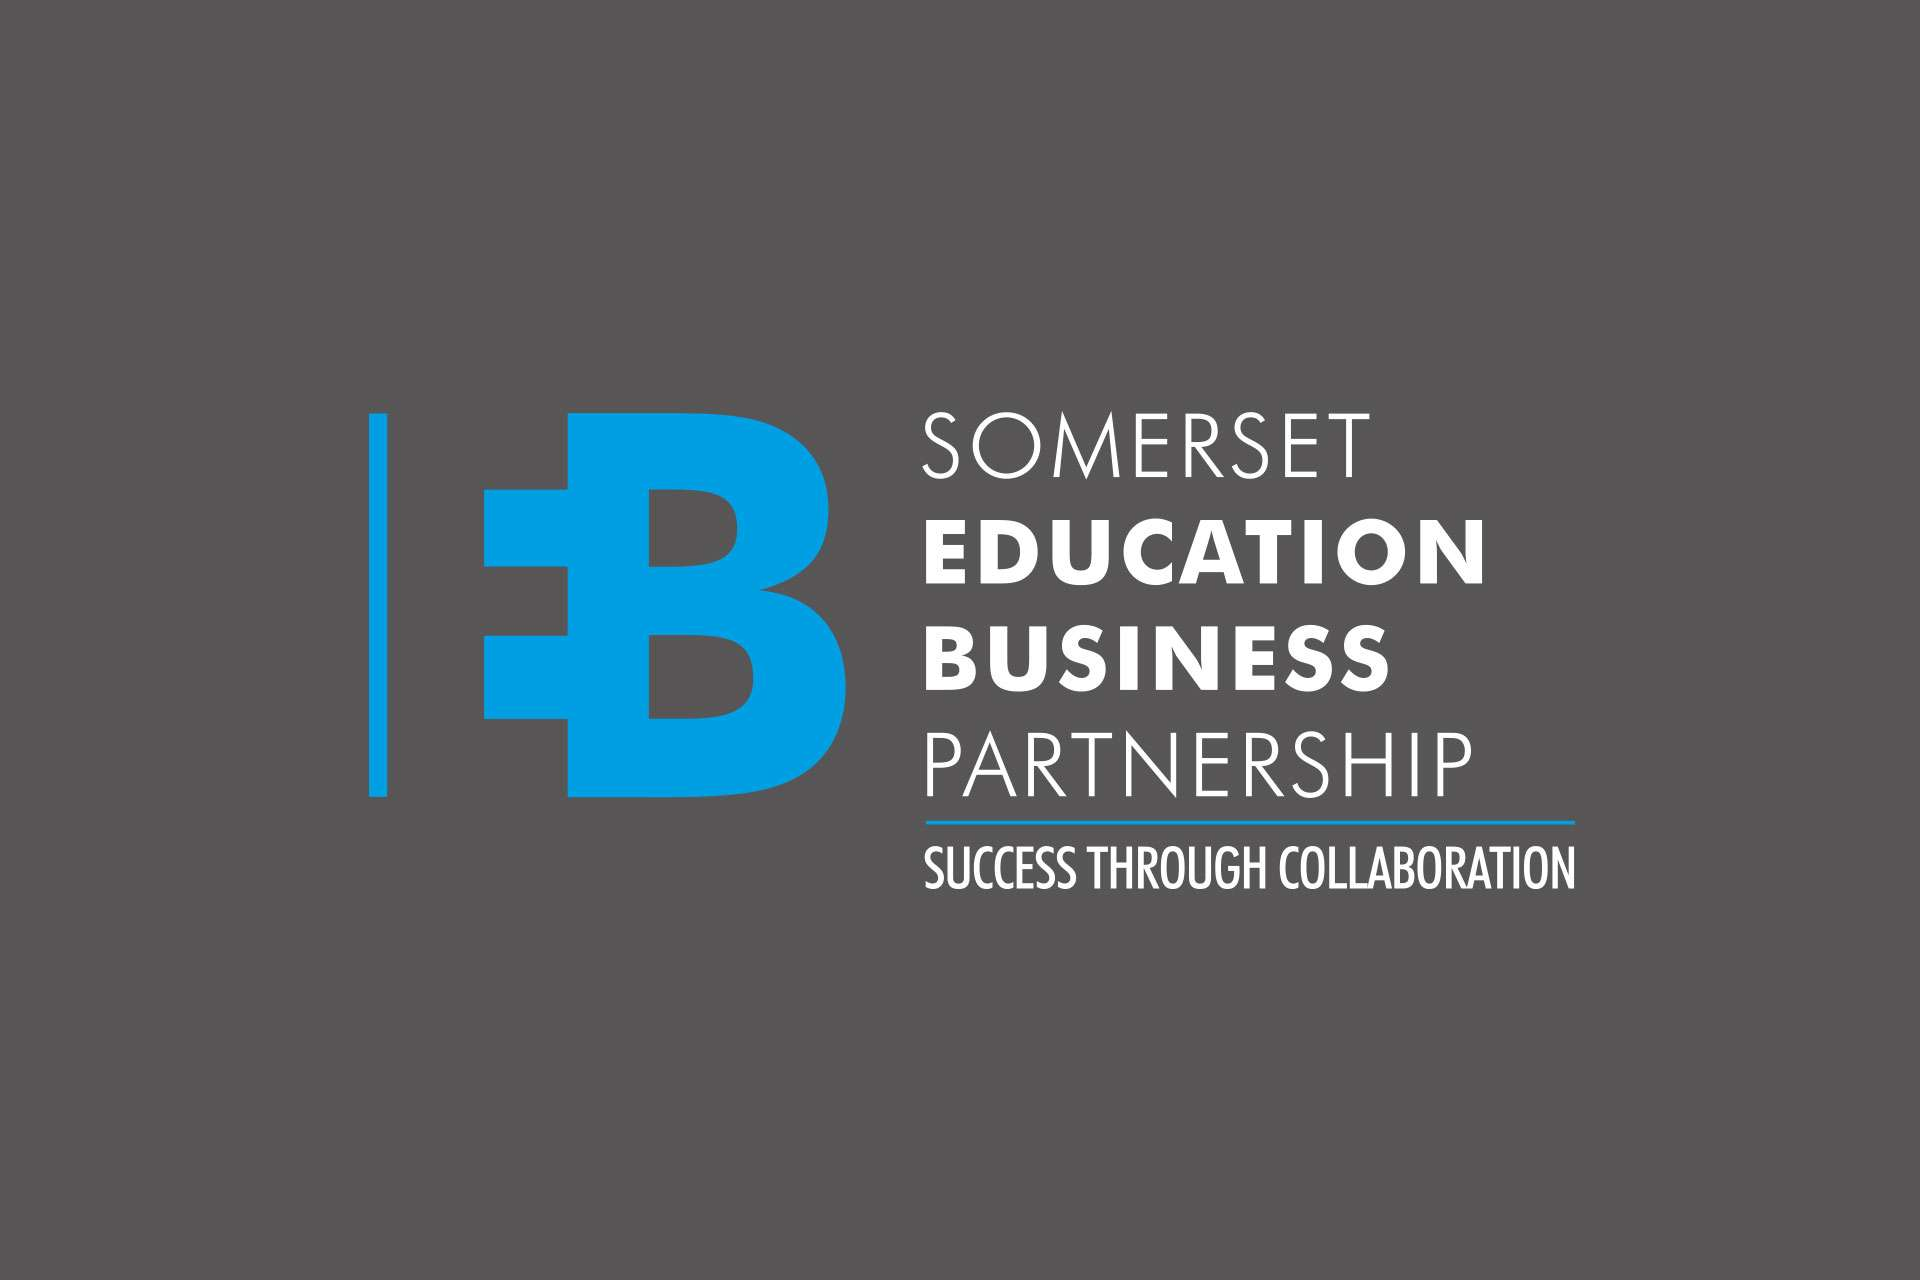 Somerset education business Partnership logo design